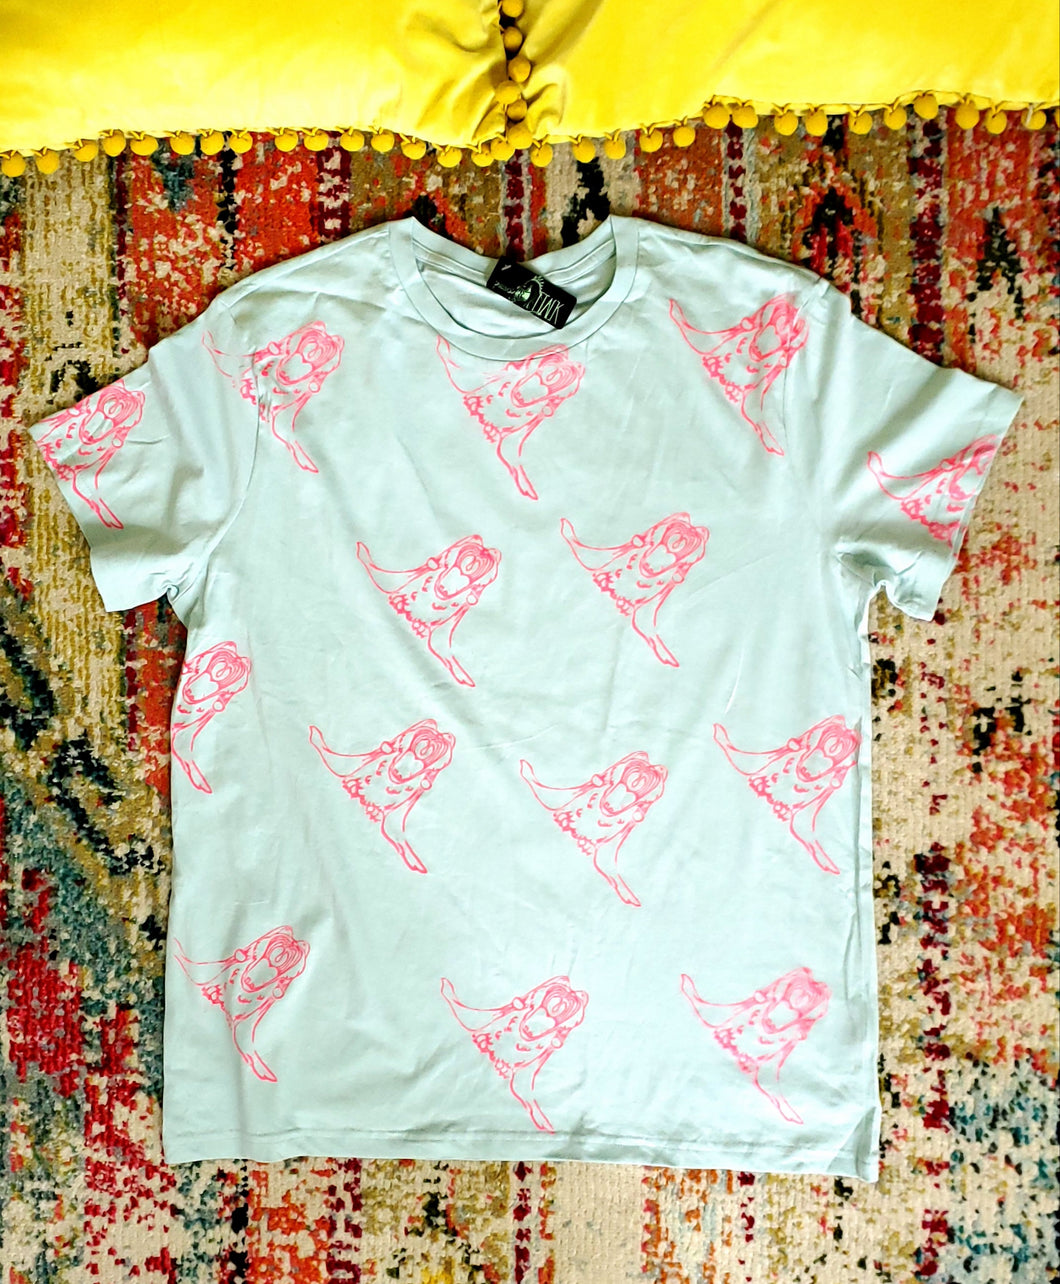 T-Shirt Screaming Bunnies Pattern Print